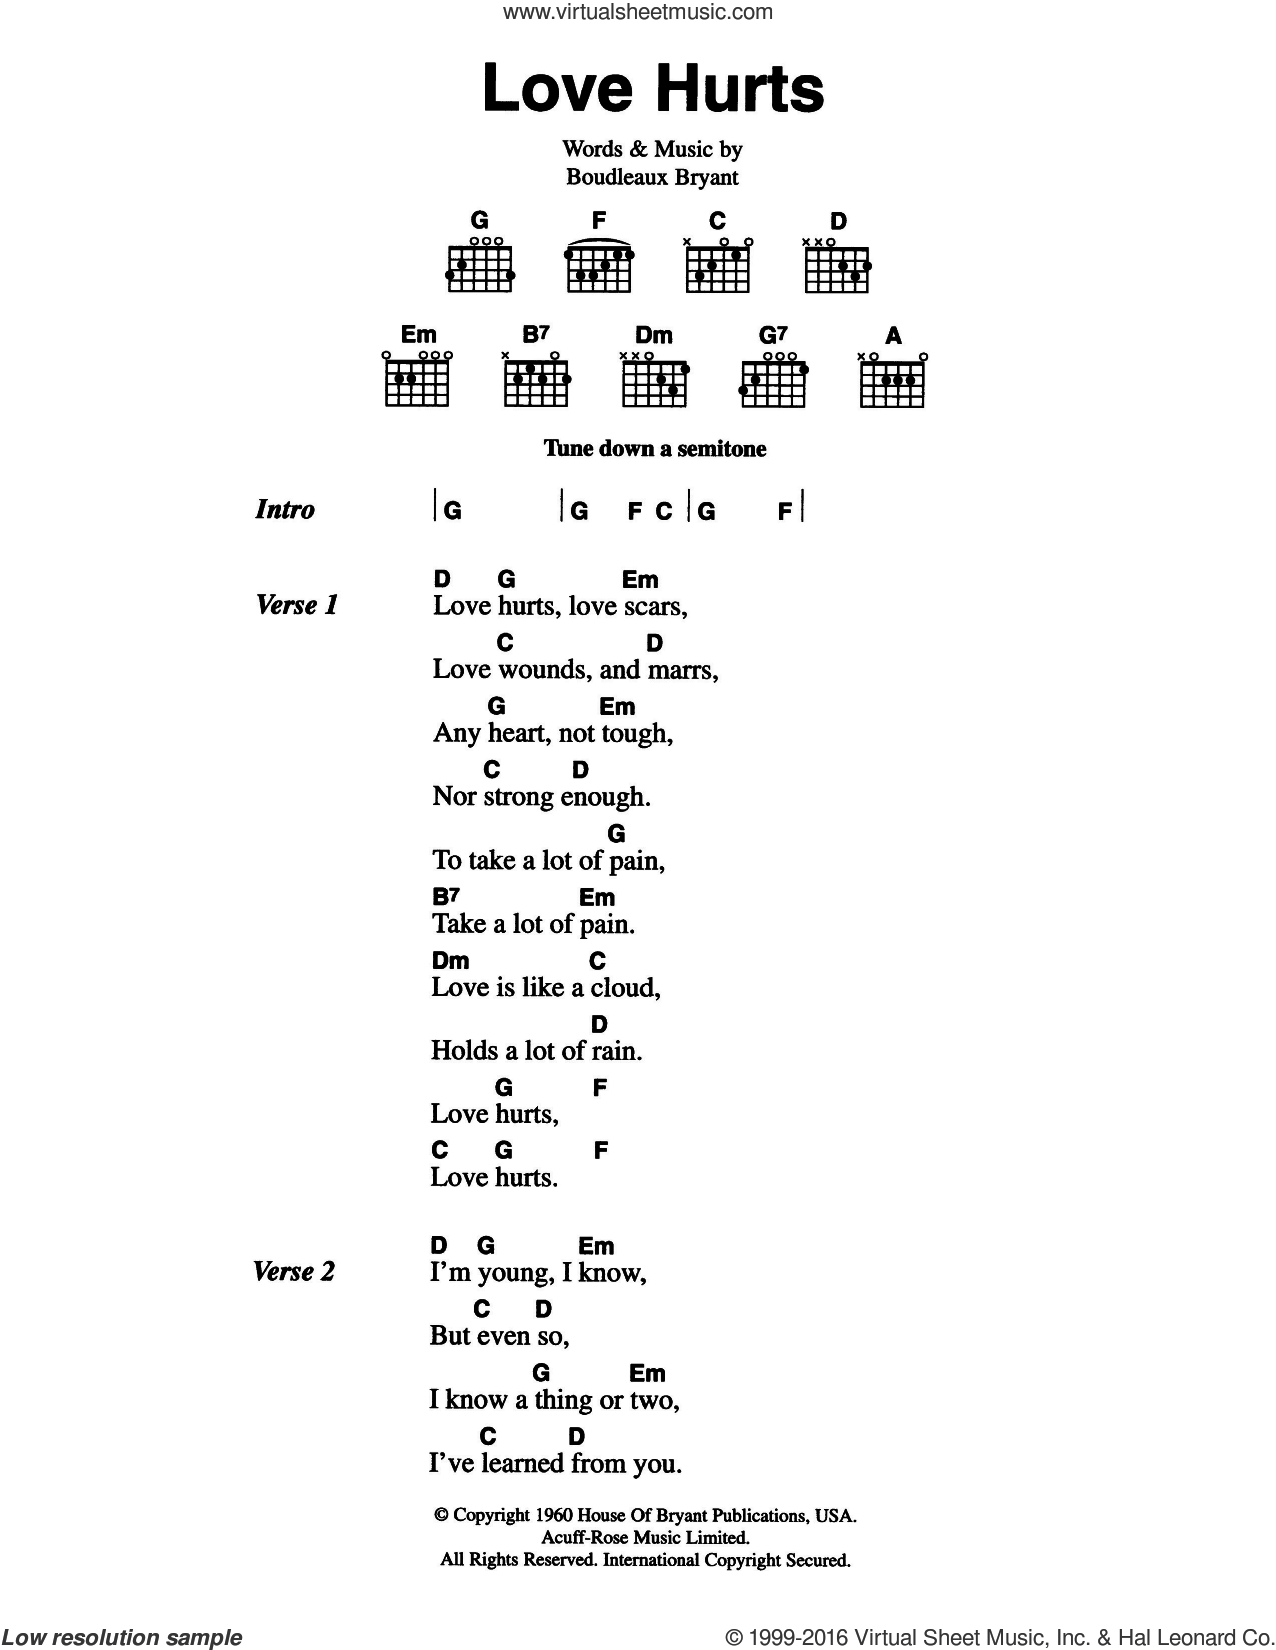 Love Hurts sheet music for guitar (chords) by The Everly Brothers, Nazareth and Boudleaux Bryant, intermediate. Score Image Preview.